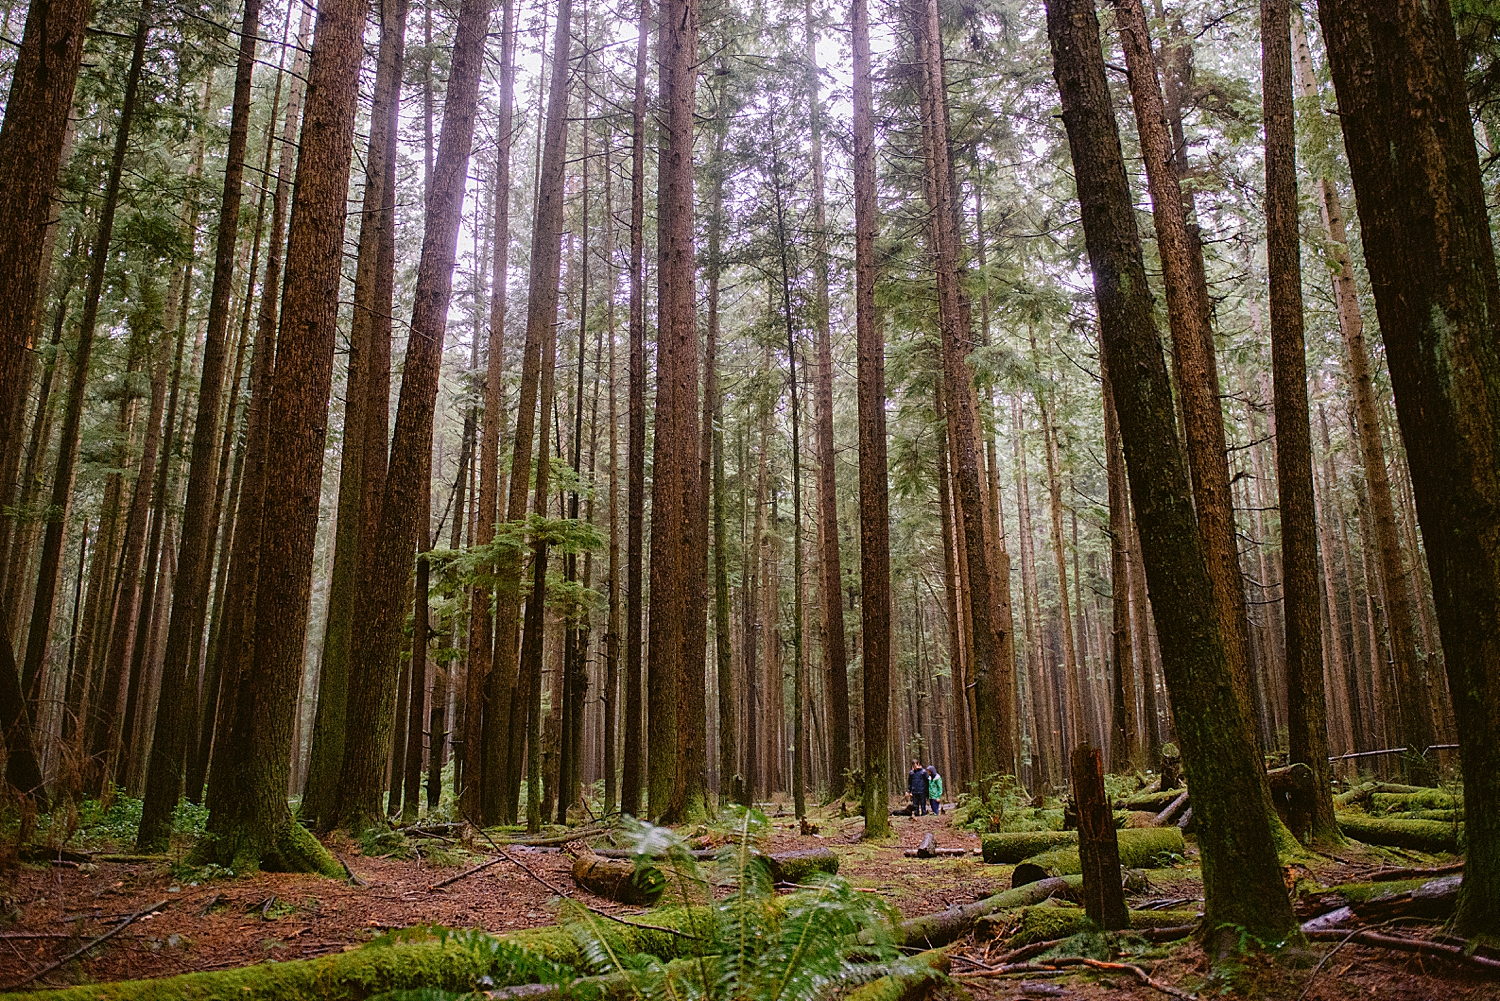 british columbia - pacific spirit park - engagement shoot - vancouver b.c.- maylies lang photography -03.jpg